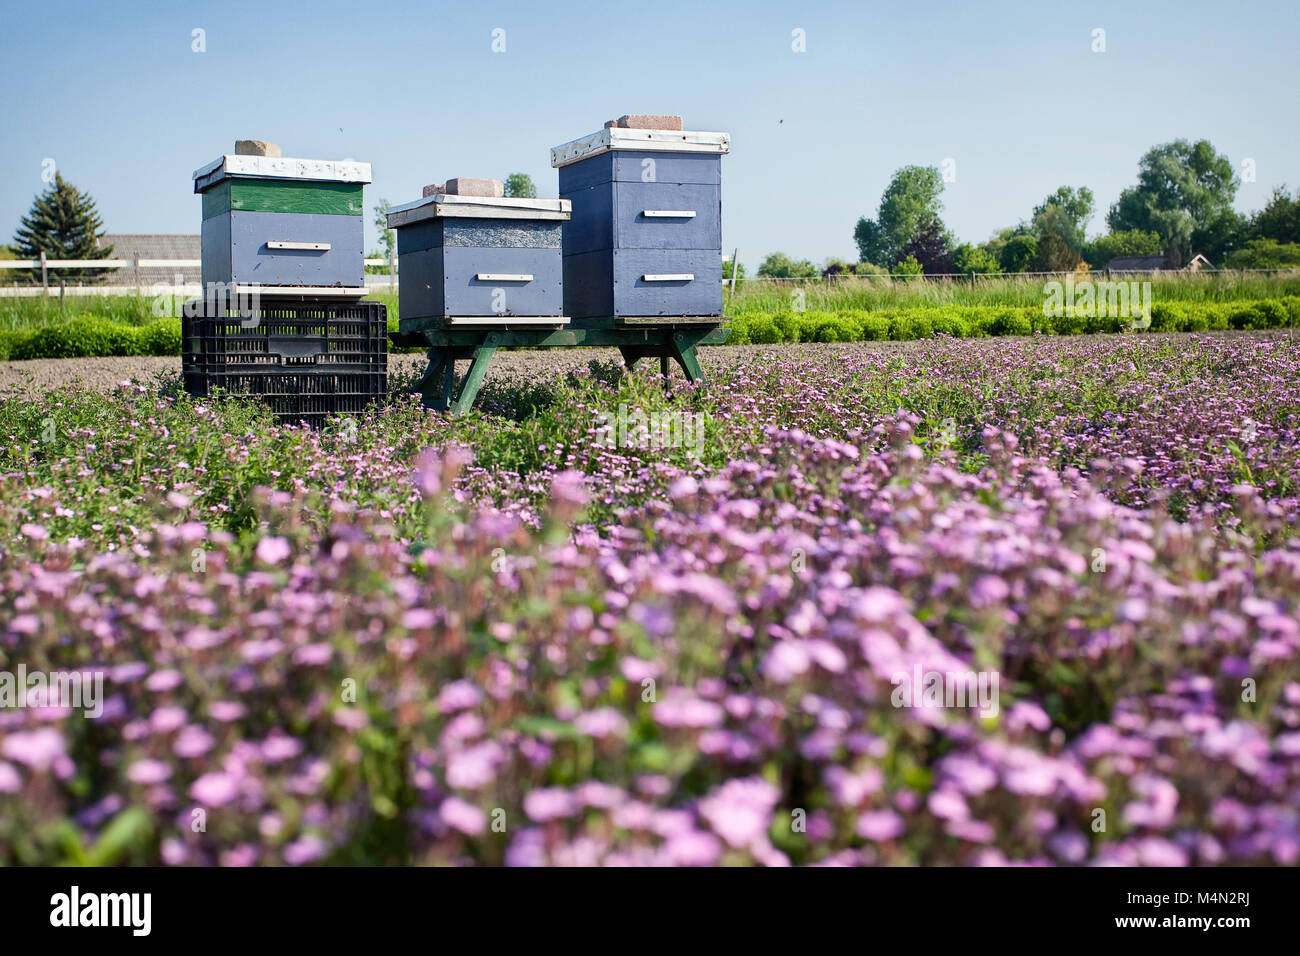 Blue beehives stand in a field with pink flowers, the bees pollinate and supply honey - Stock Image